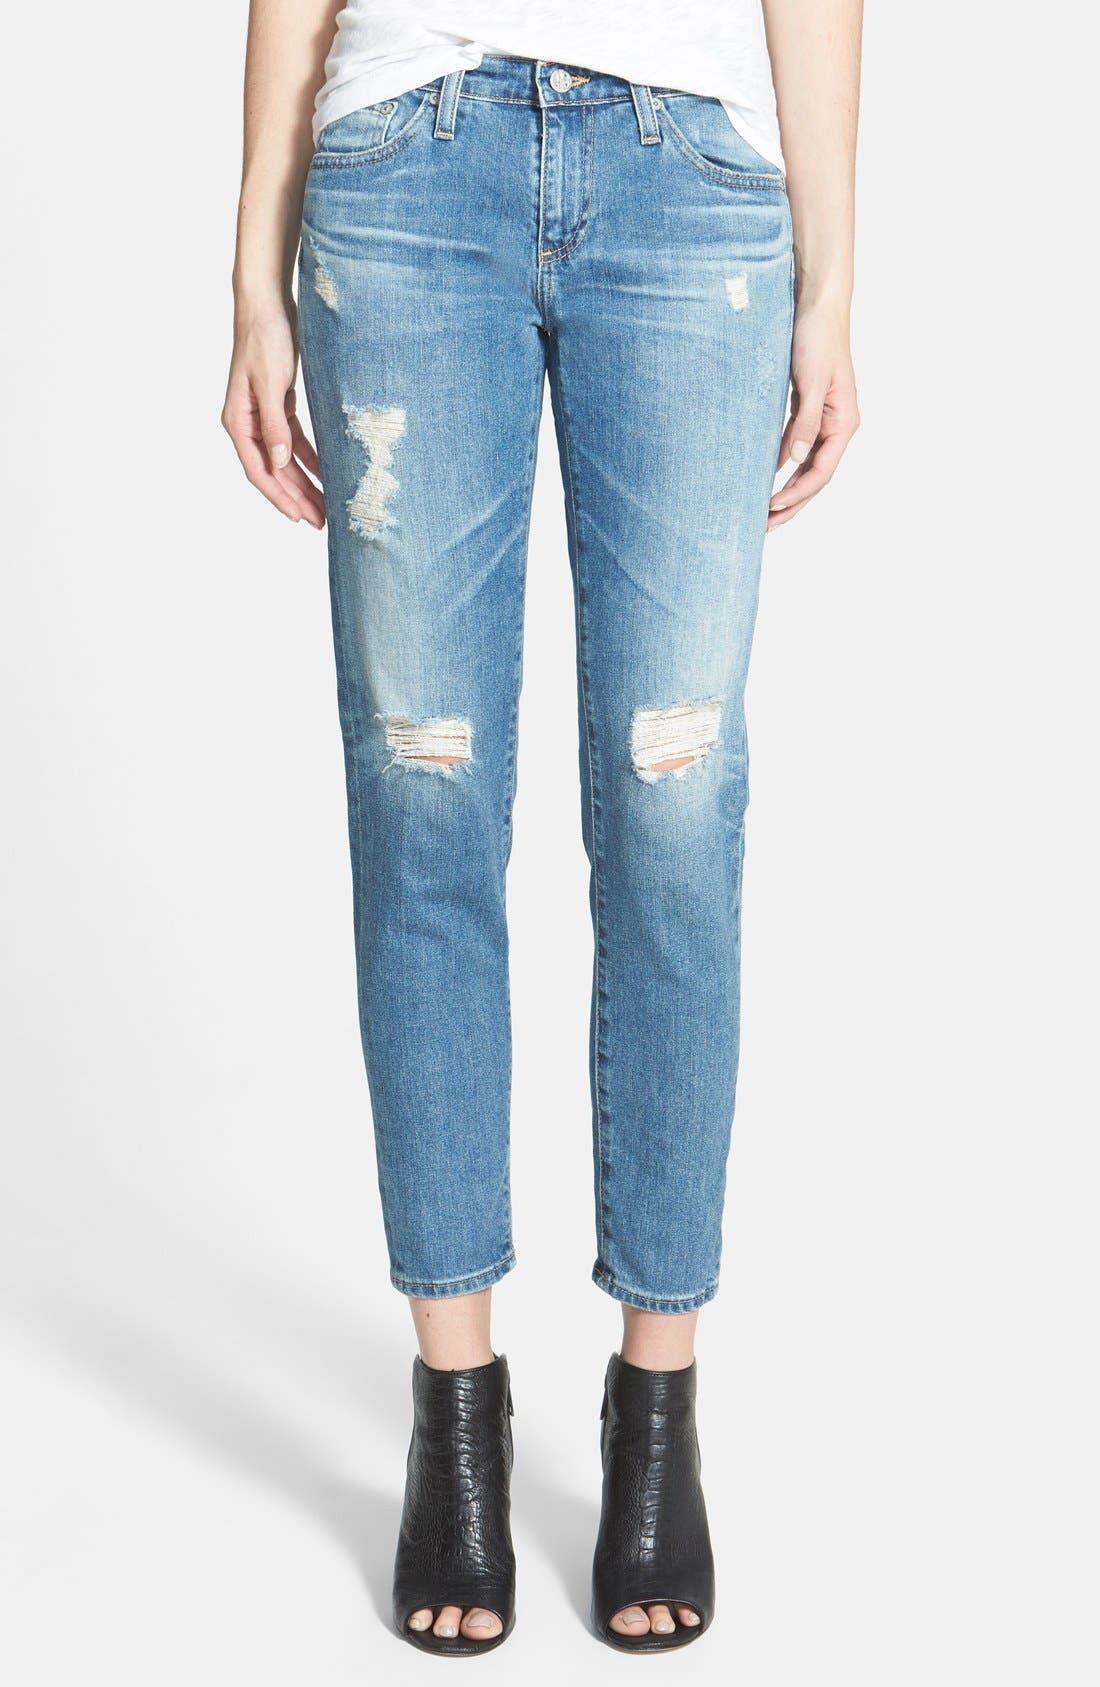 Alternate Image 1 Selected - AG 'Stilt' Cigarette Leg Jeans (17-Year Riot)